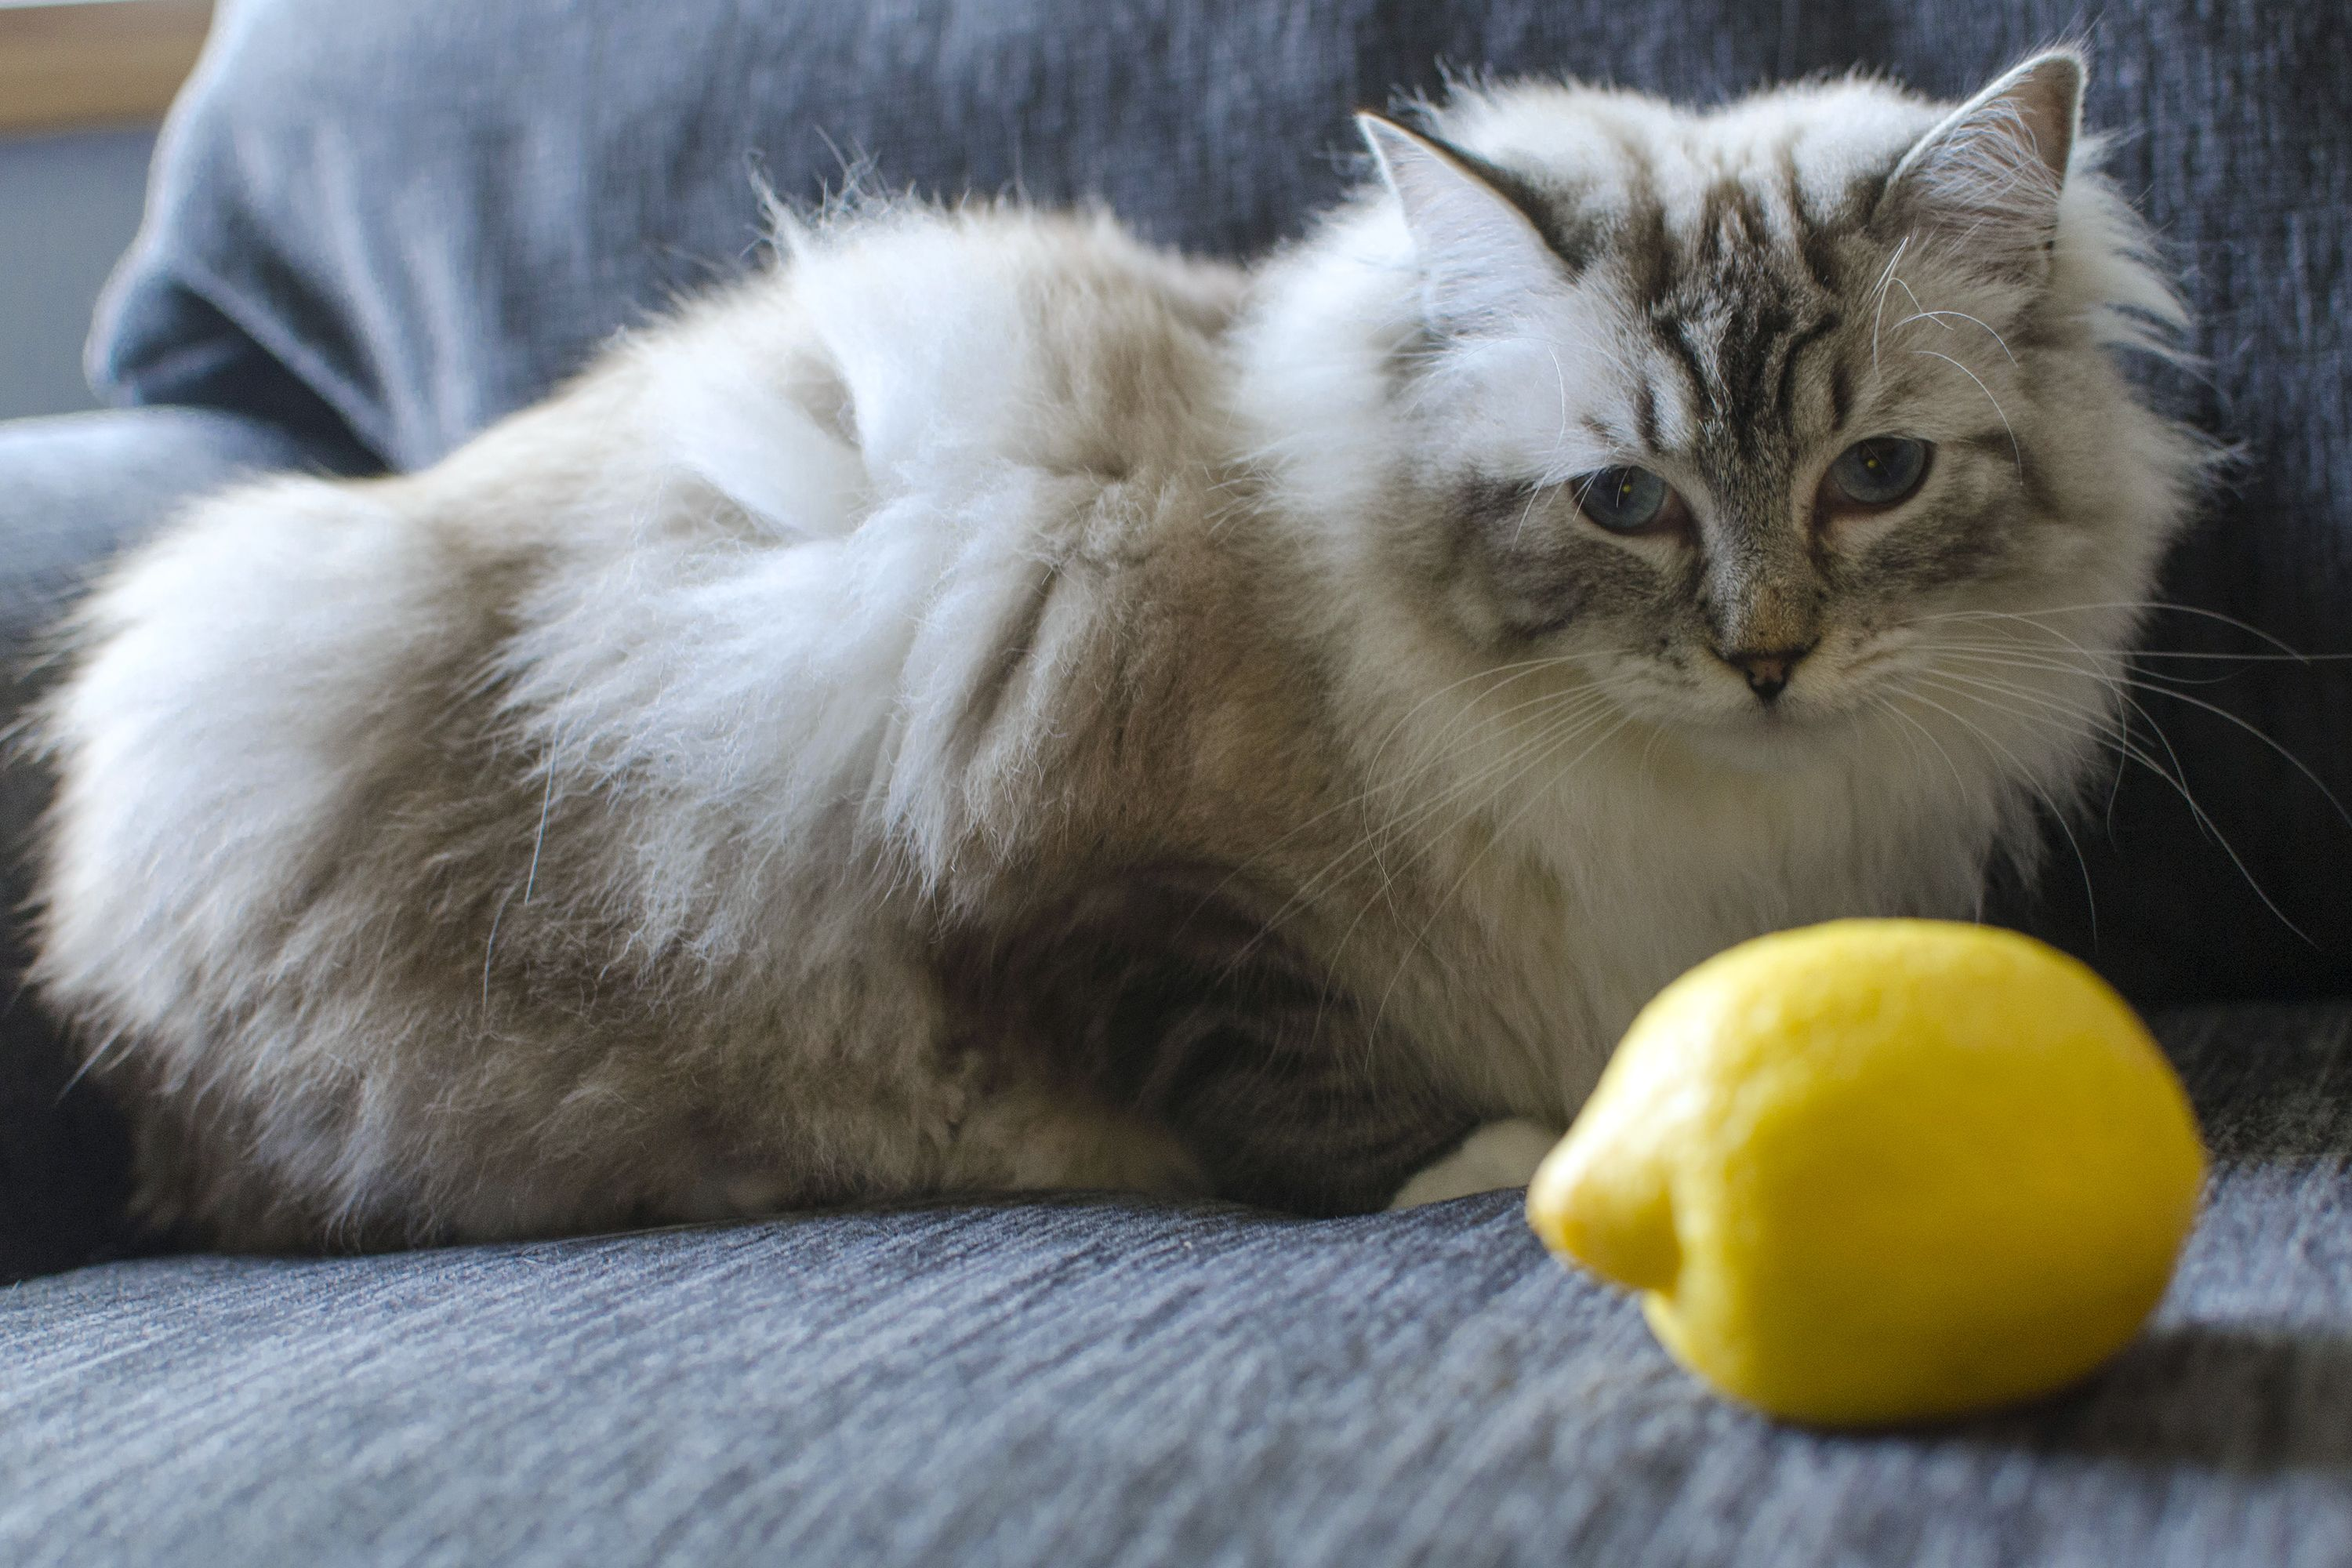 How to Use Lemon Spray to Kill Fleas on Cats Cat fleas